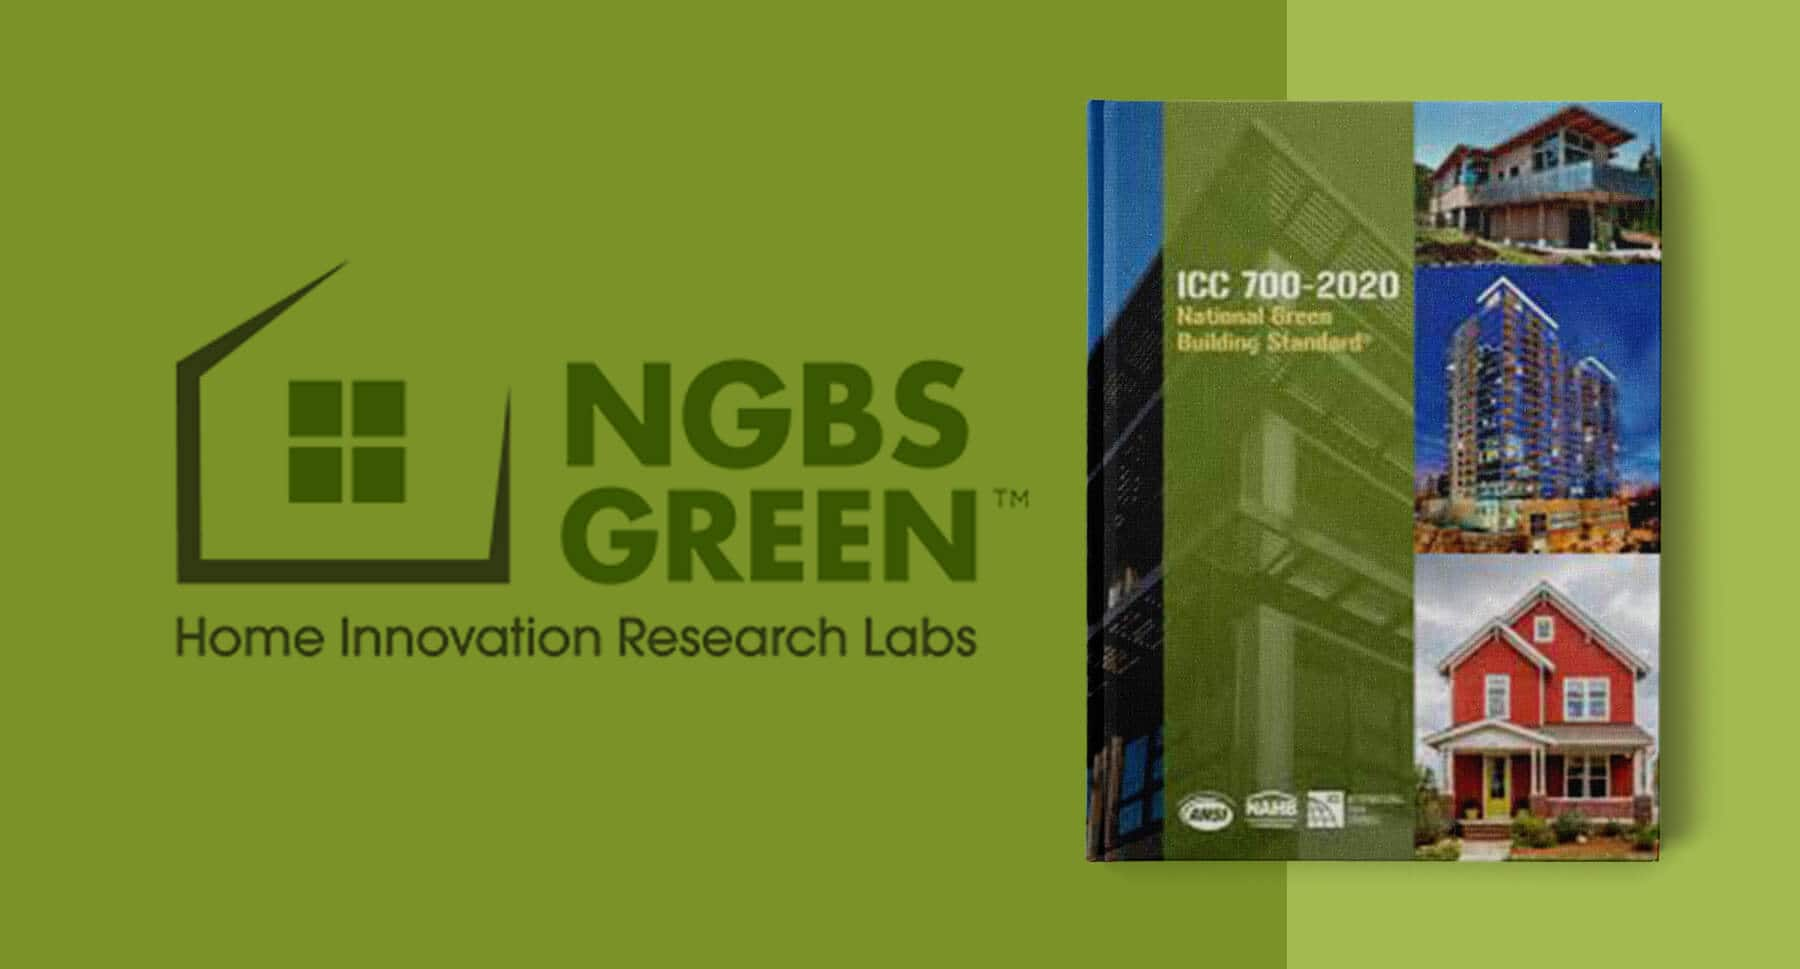 Cover of the ICC 700-2020 NGBS